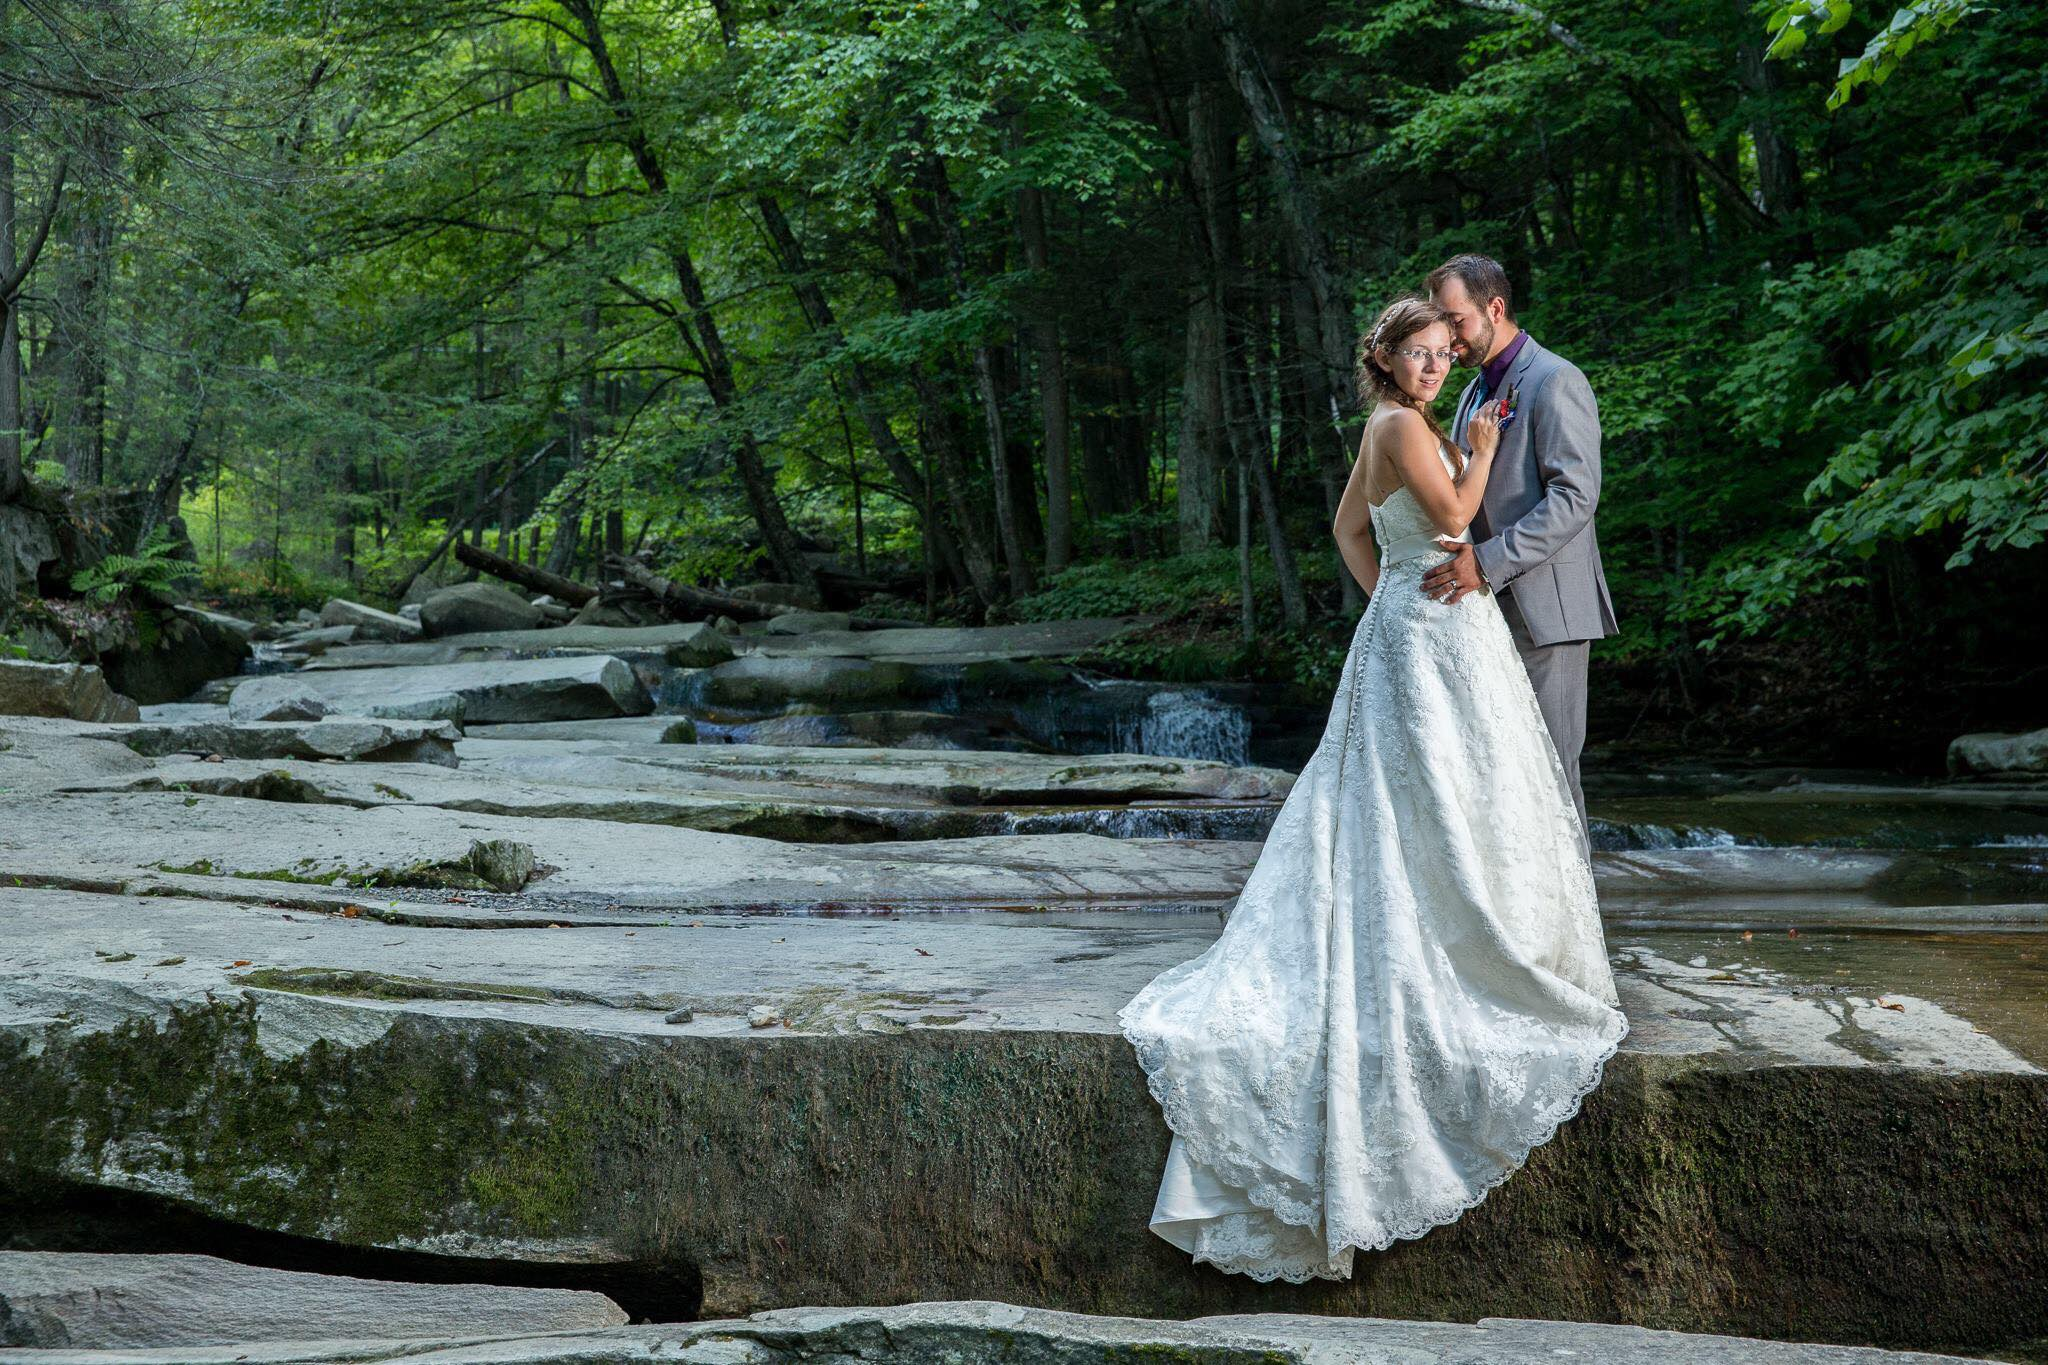 Erin & Zach - Courtesy of Four Wings Photography